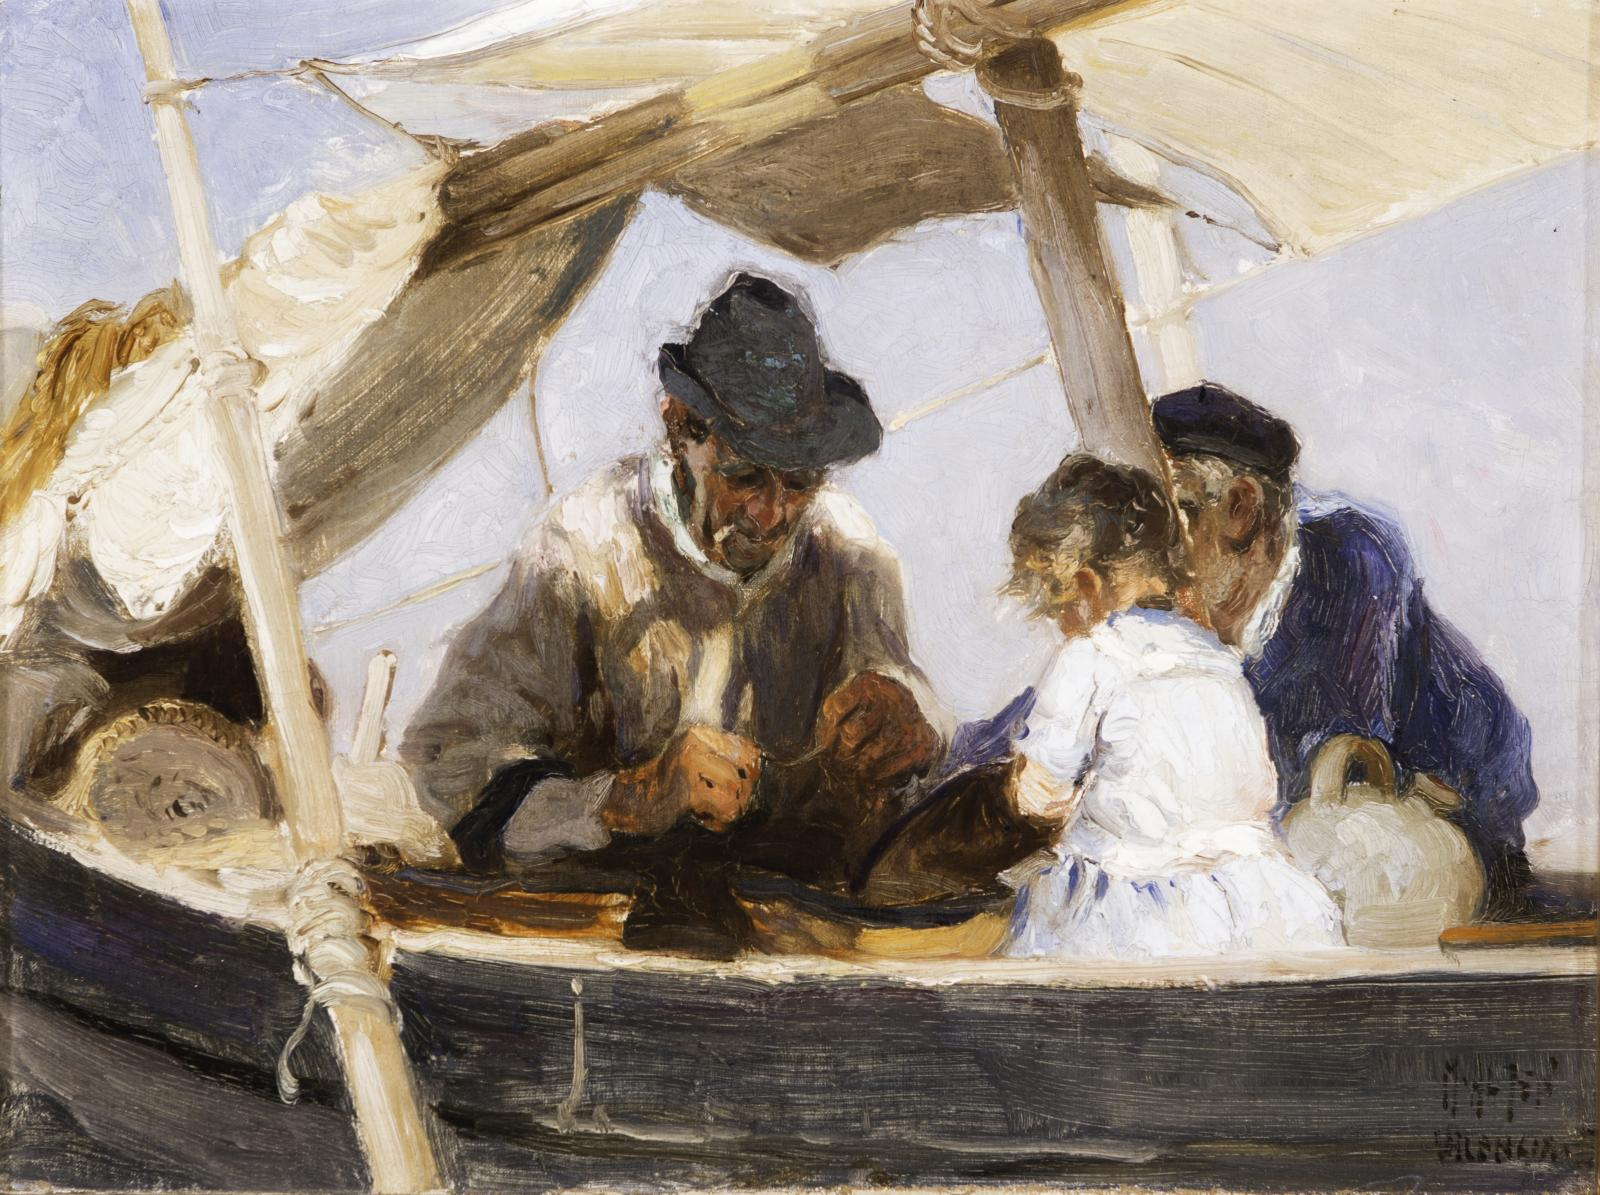 Two men and a young child wearing white in a boat.